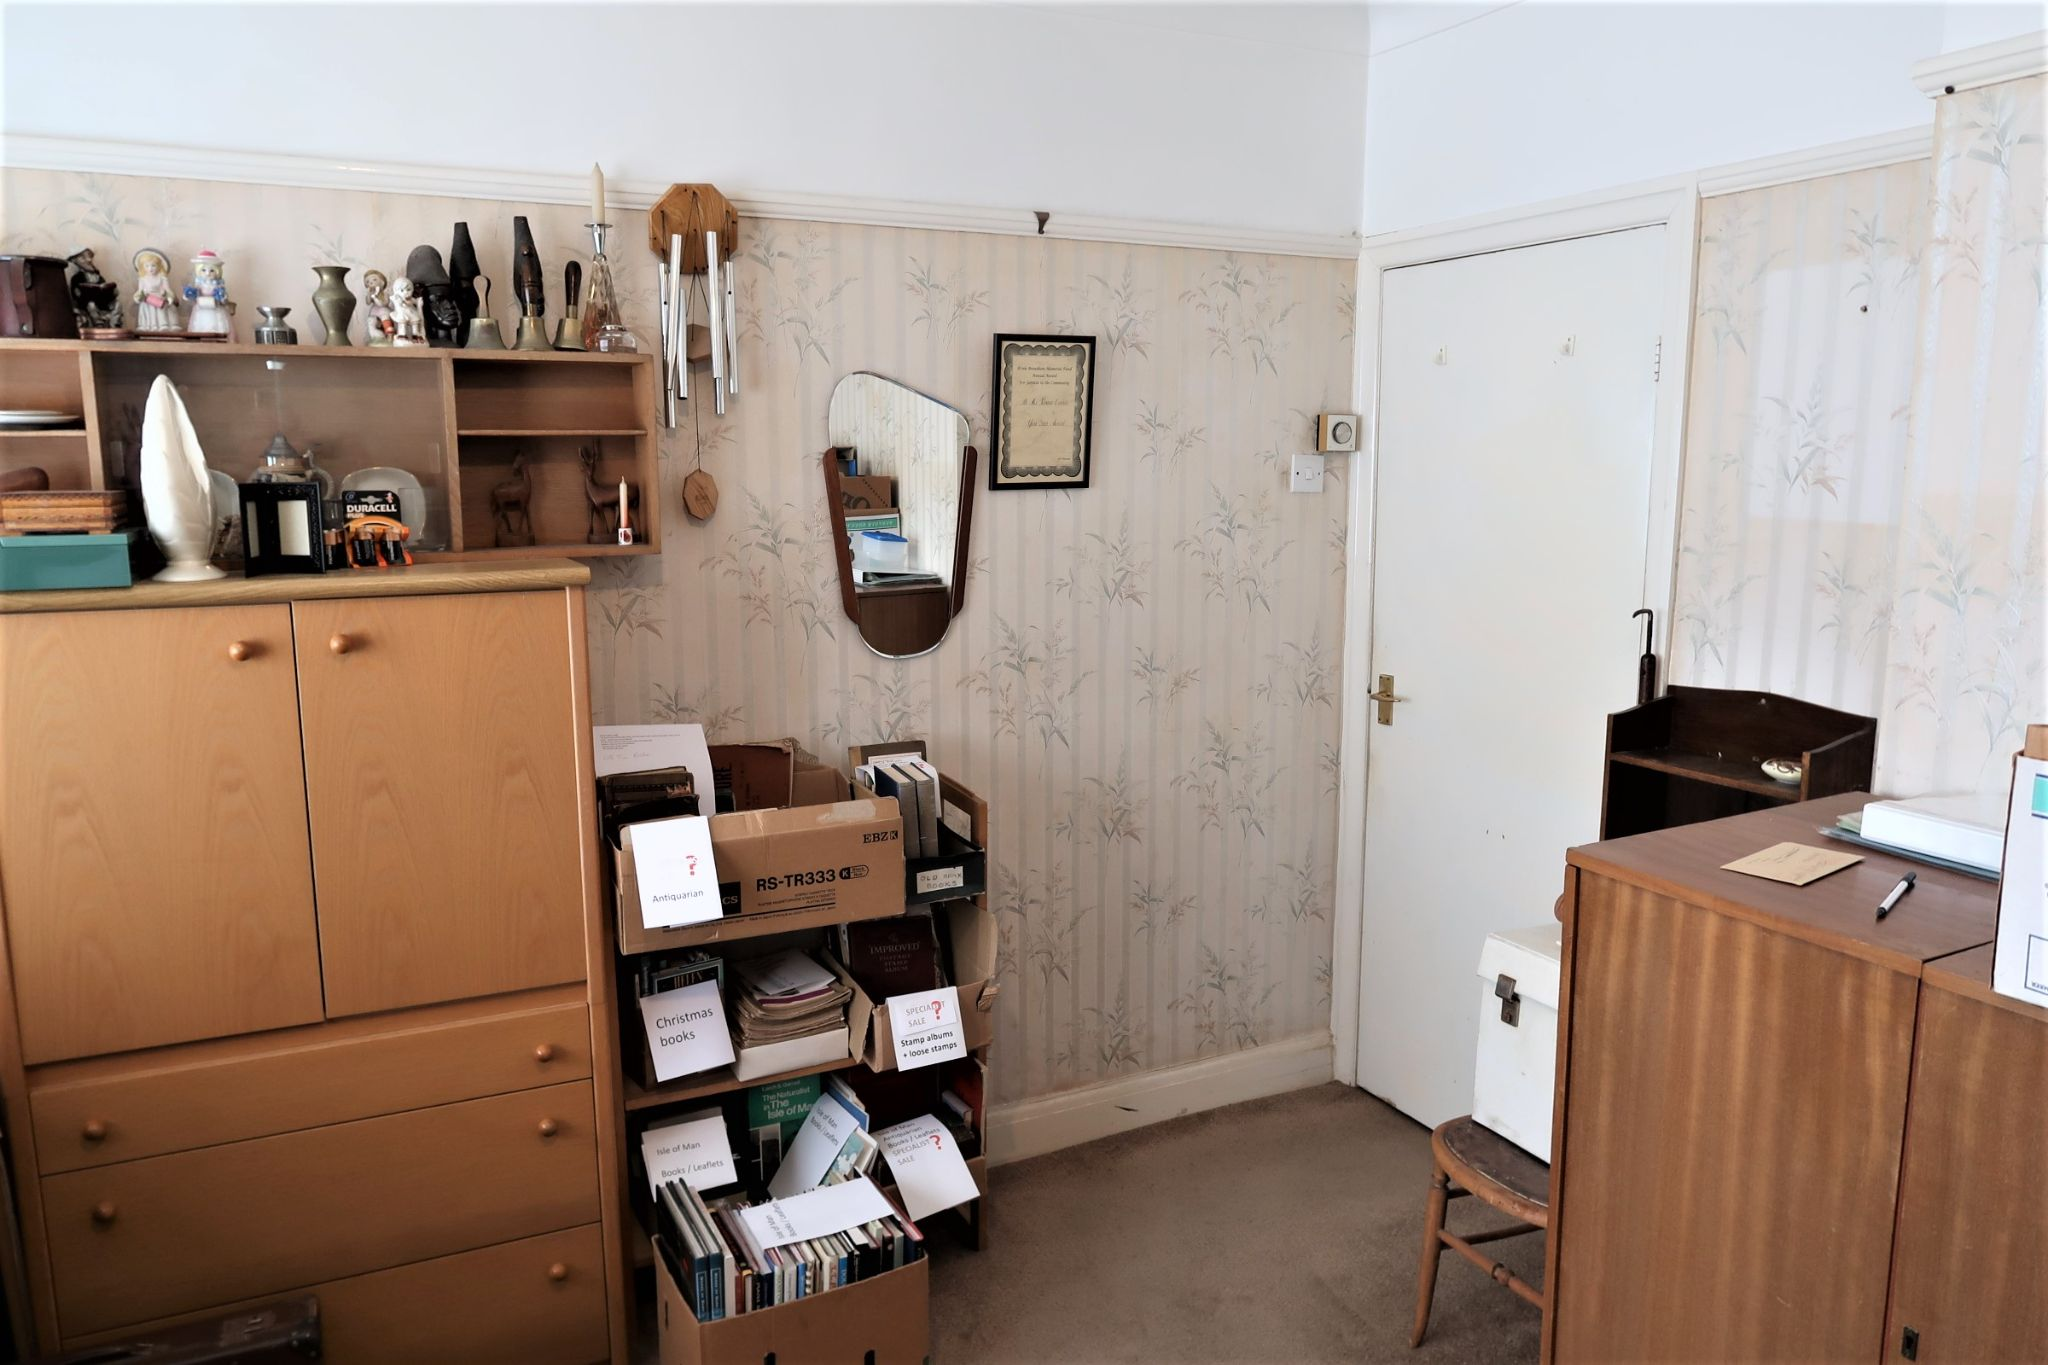 3 bedroom detached bungalow SSTC in Port St. Mary - Property photograph